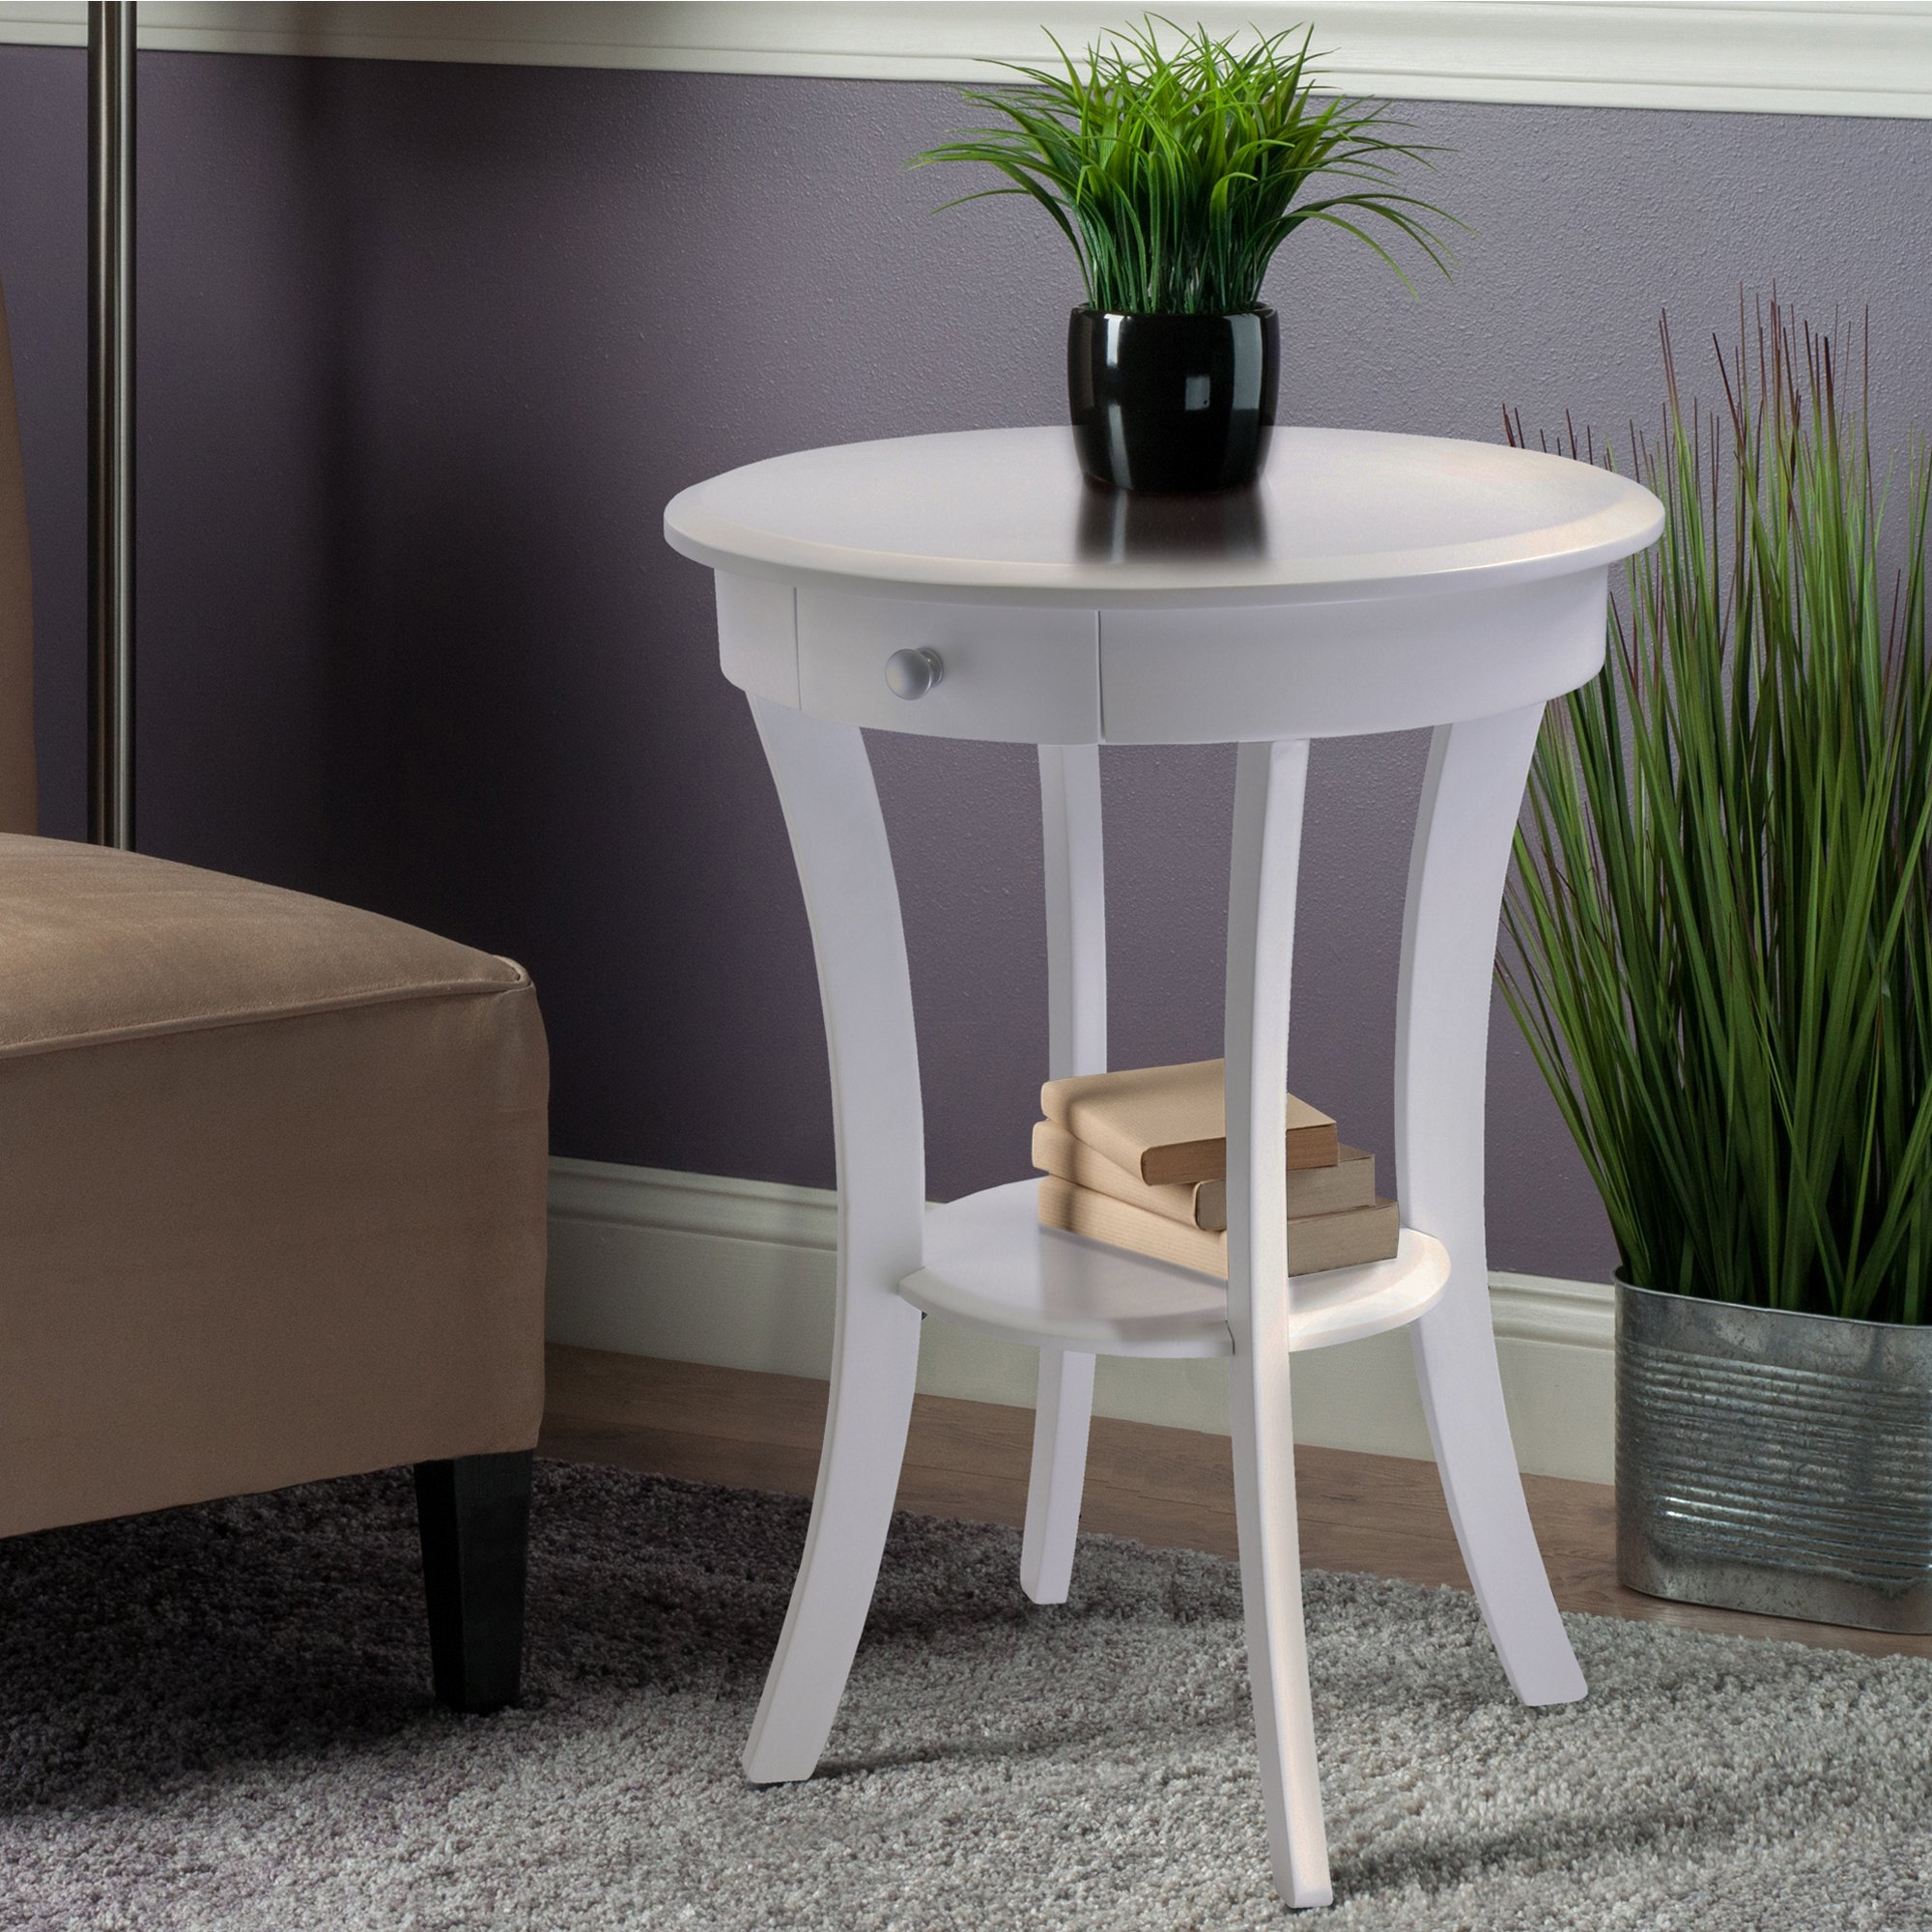 winsome wood transitional white composite accent table sasha small tiffany lamps dining set round nesting tables butler side scandinavian ott coffee black with glass brown leather